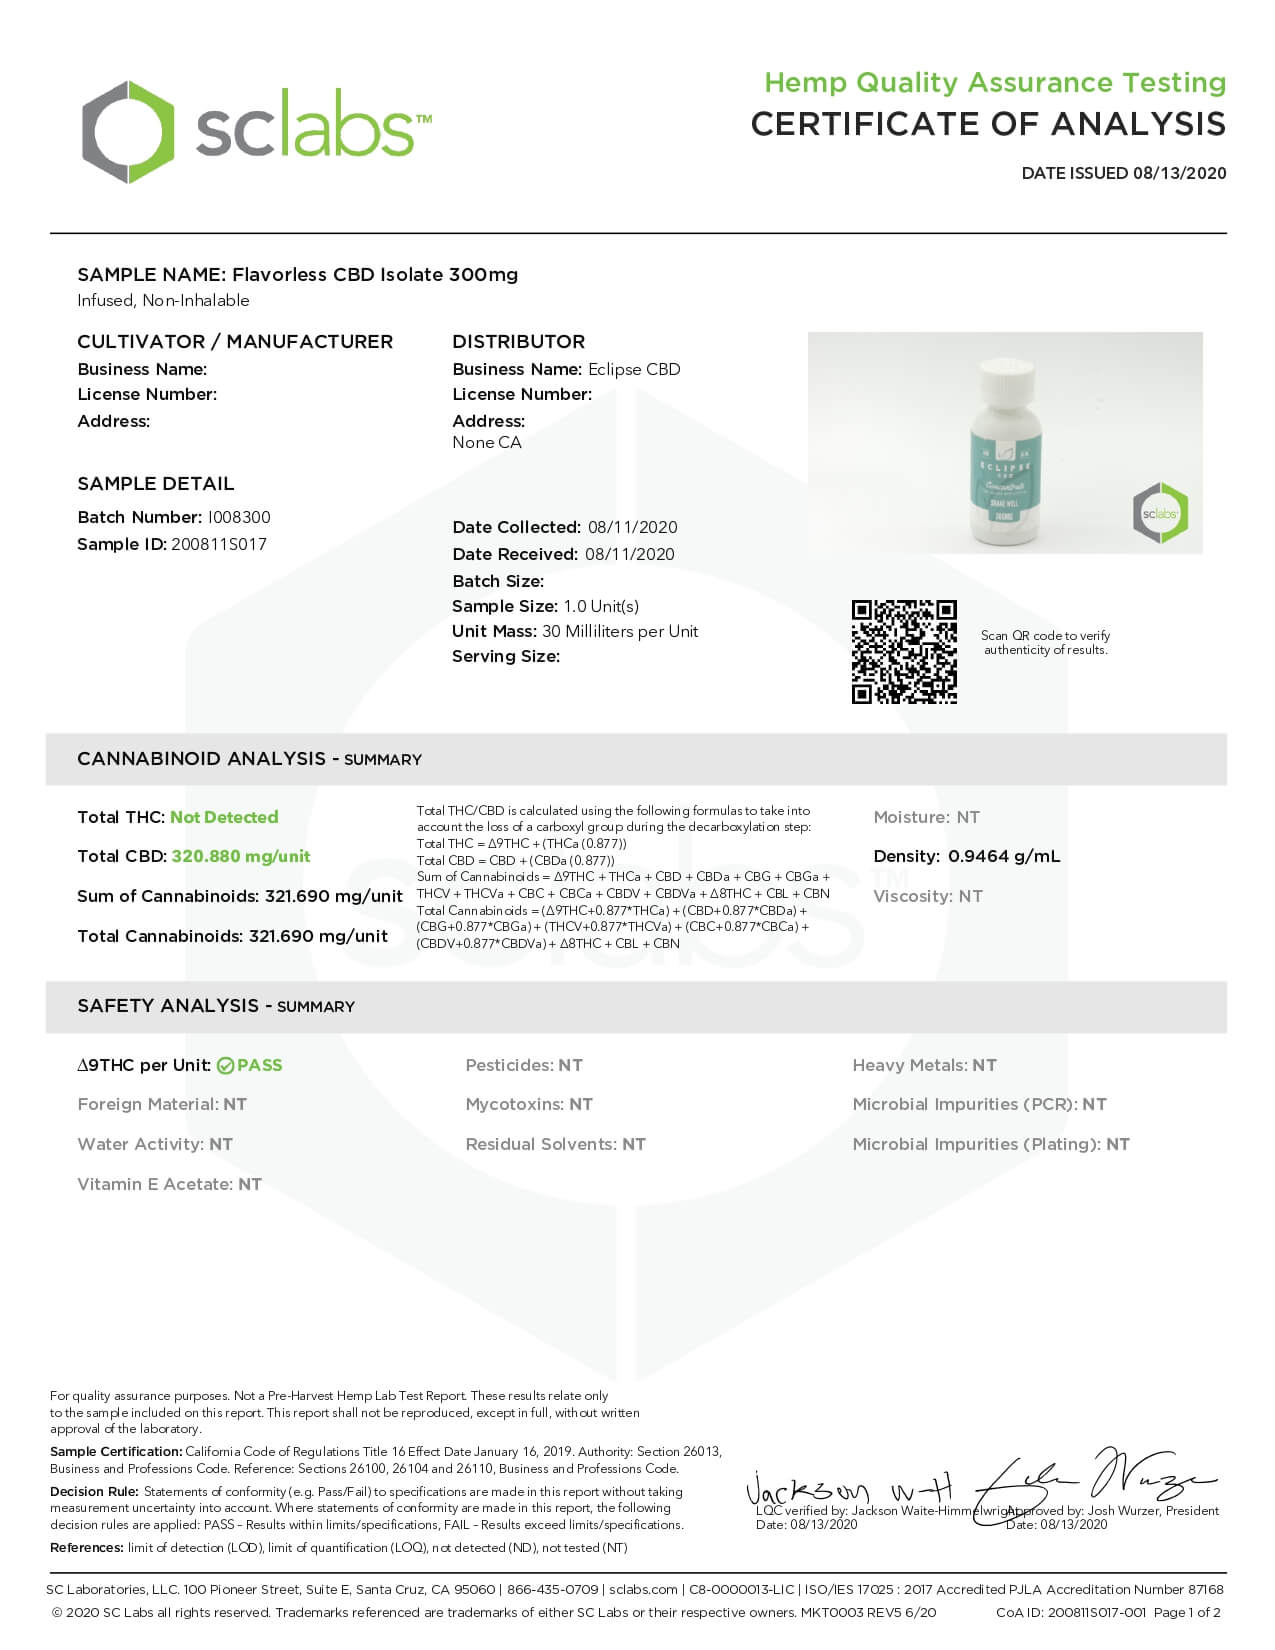 Eclipse CBD MCT Tincture Unflavored 300mg Lab Report